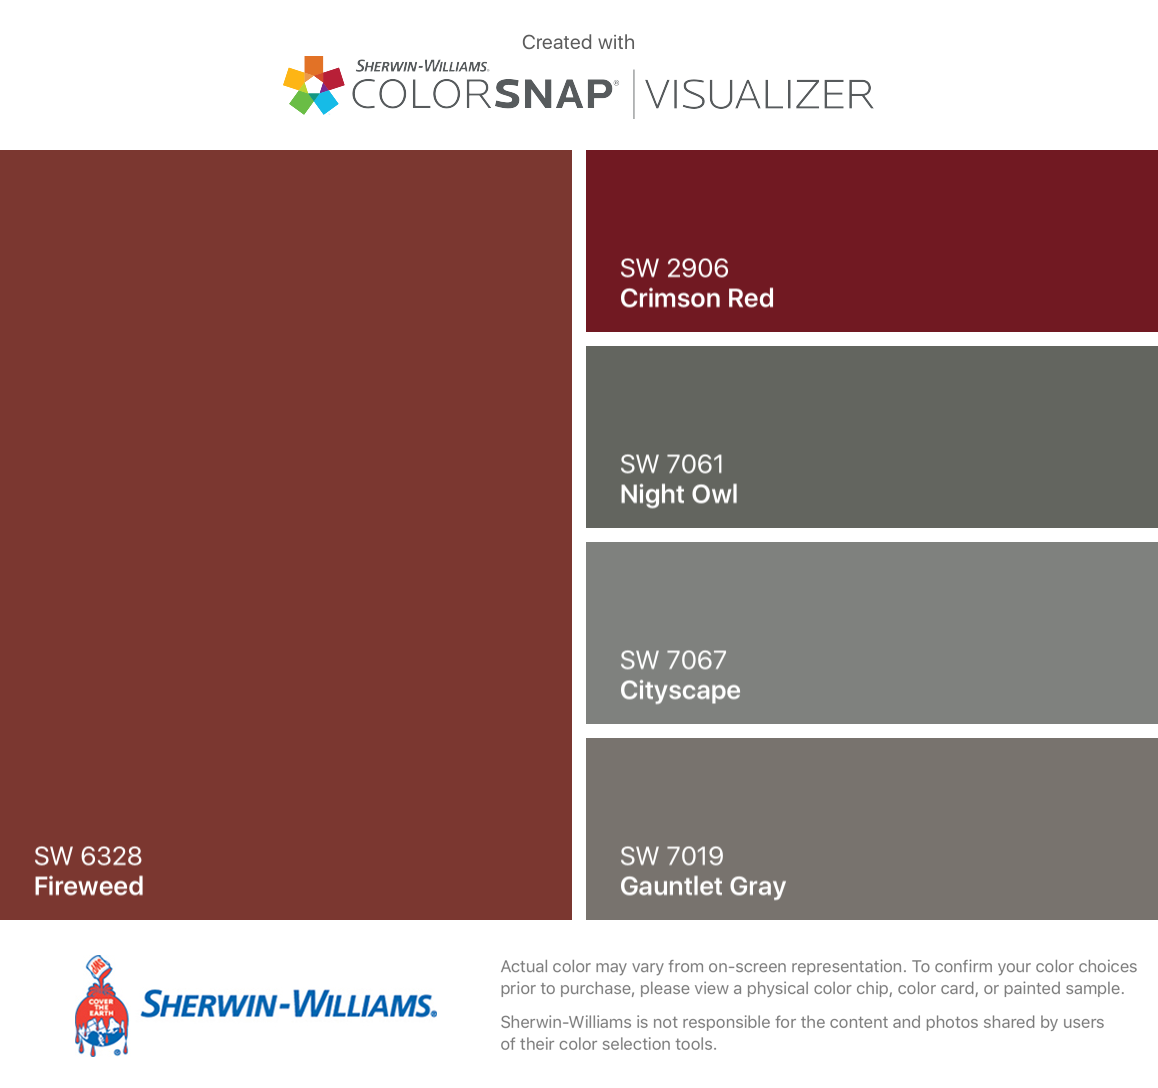 I Found These Colors With ColorSnapR Visualizer For IPhone By Sherwin Williams Fireweed SW 6328 Crimson Red 2906 Night Owl 7061